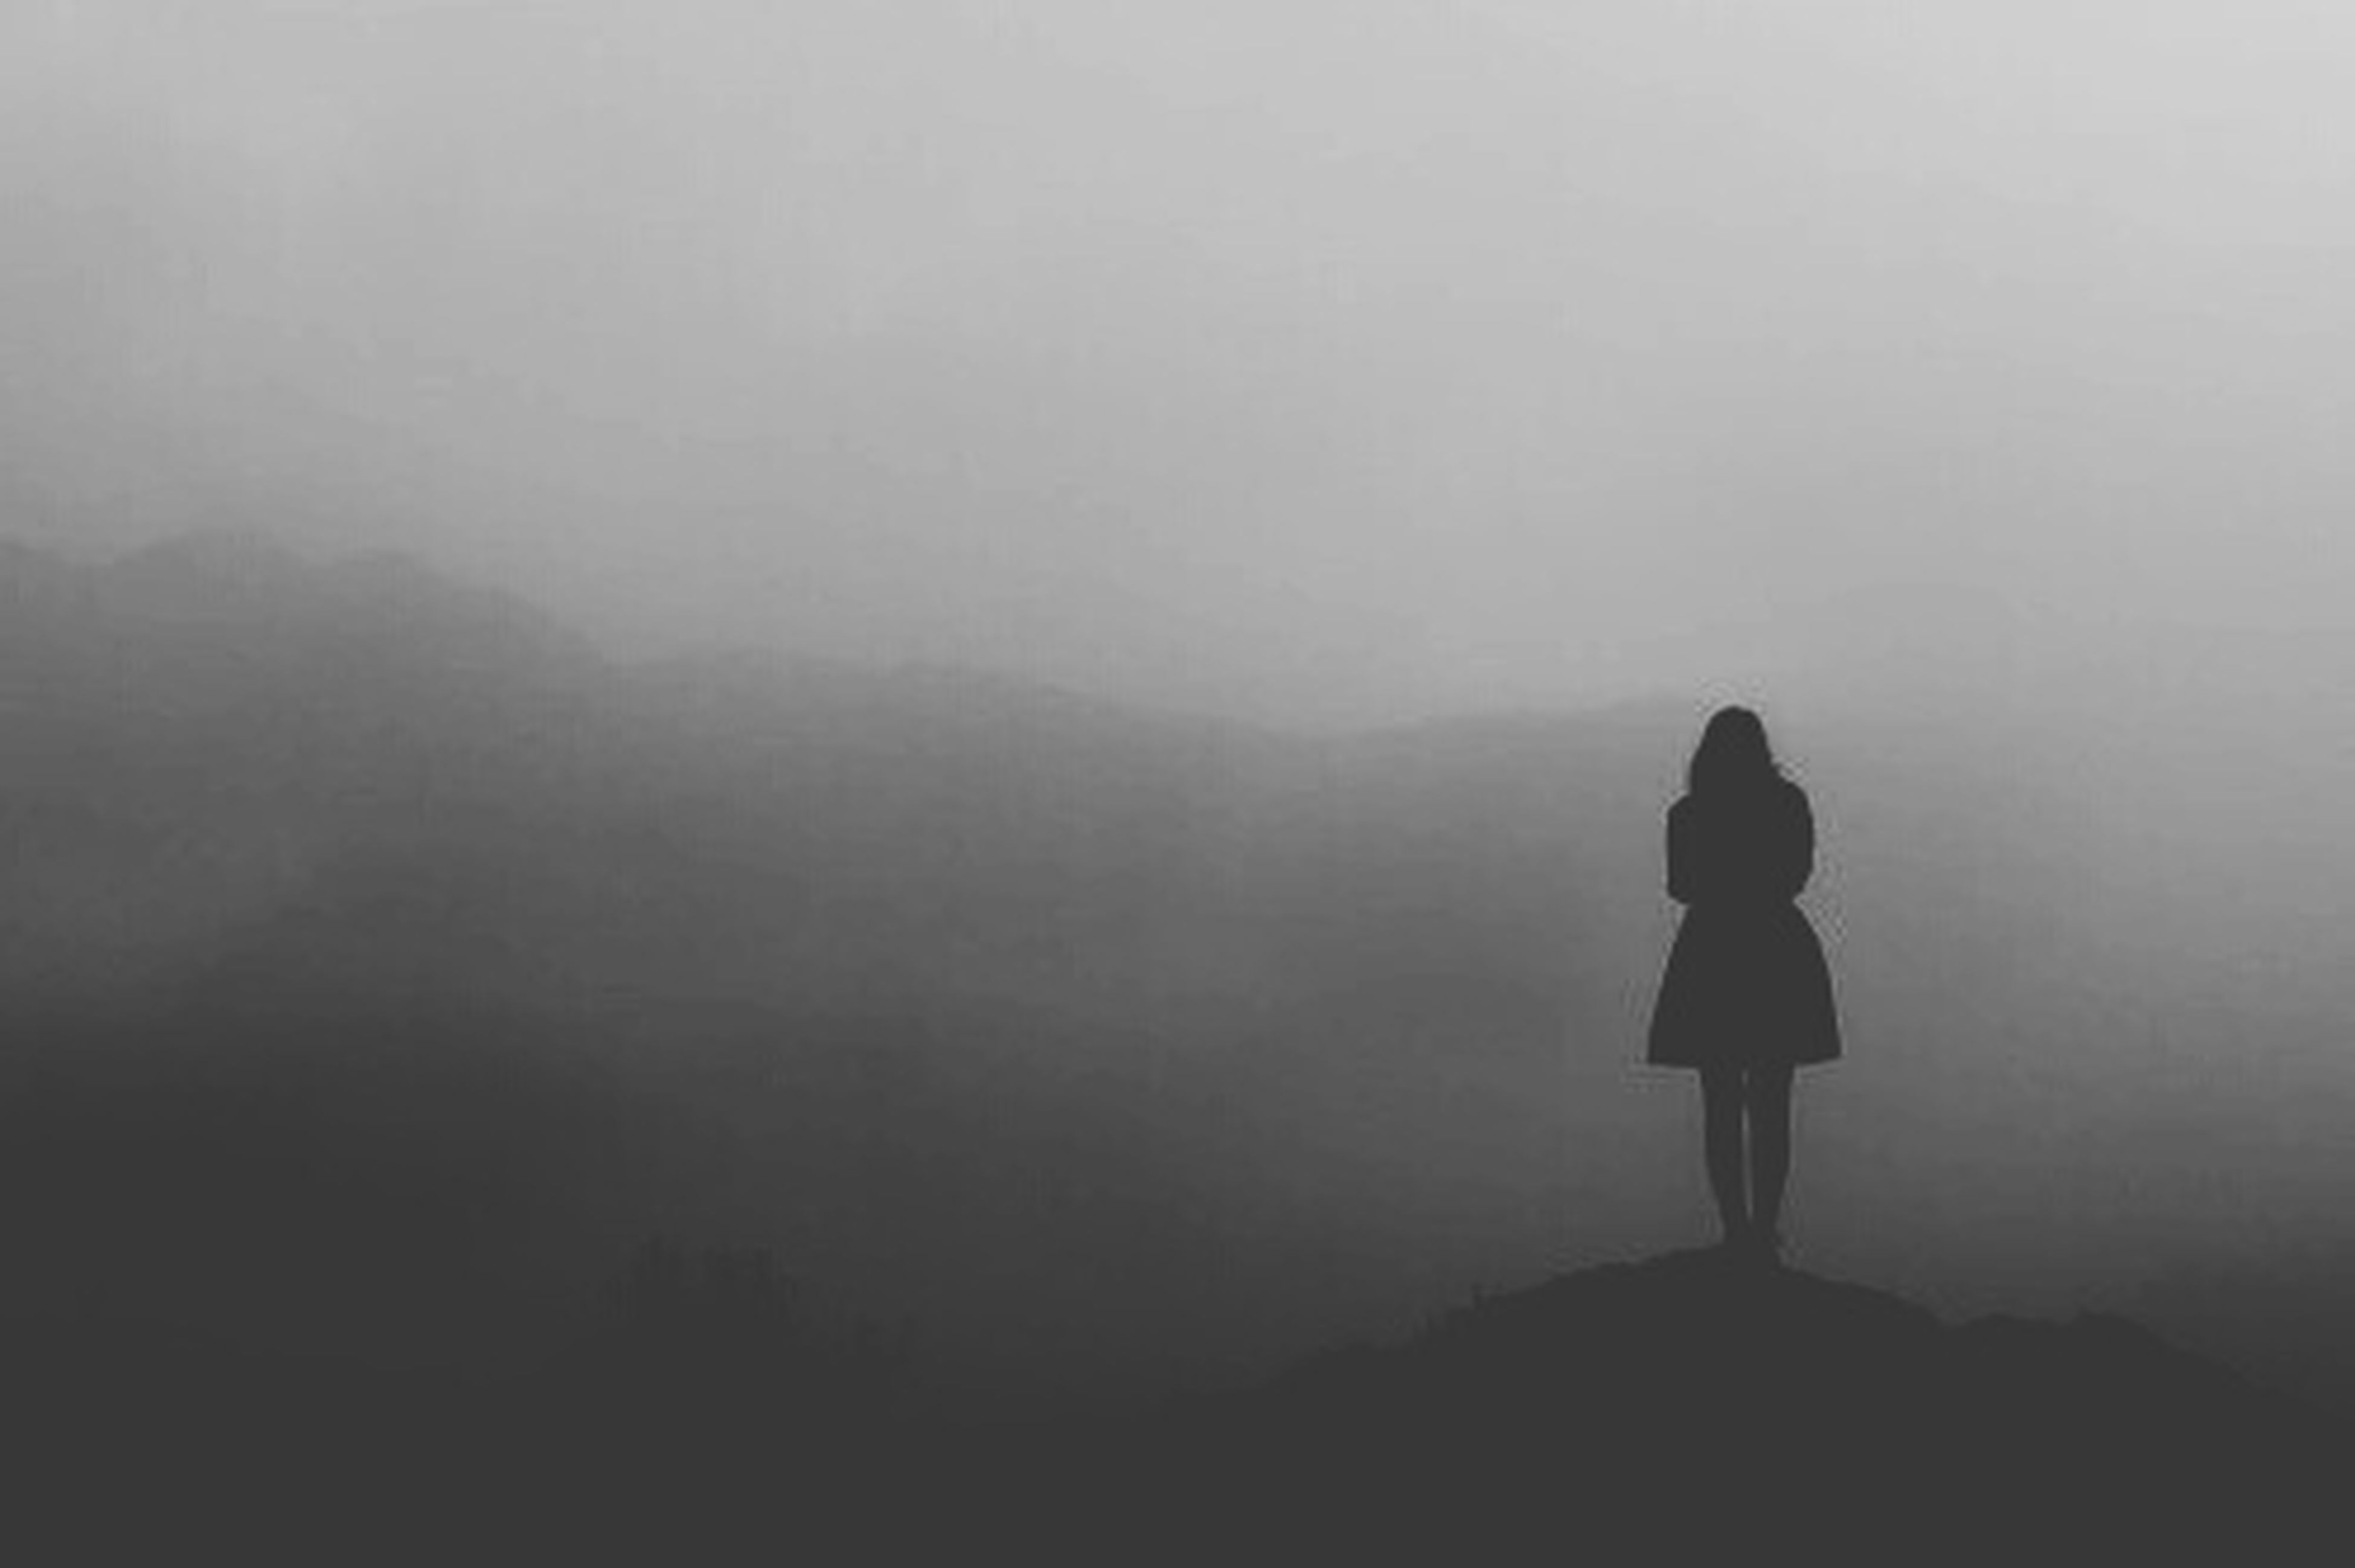 fog, foggy, silhouette, rear view, standing, copy space, tranquility, full length, weather, tranquil scene, lifestyles, men, nature, leisure activity, scenics, beauty in nature, landscape, solitude